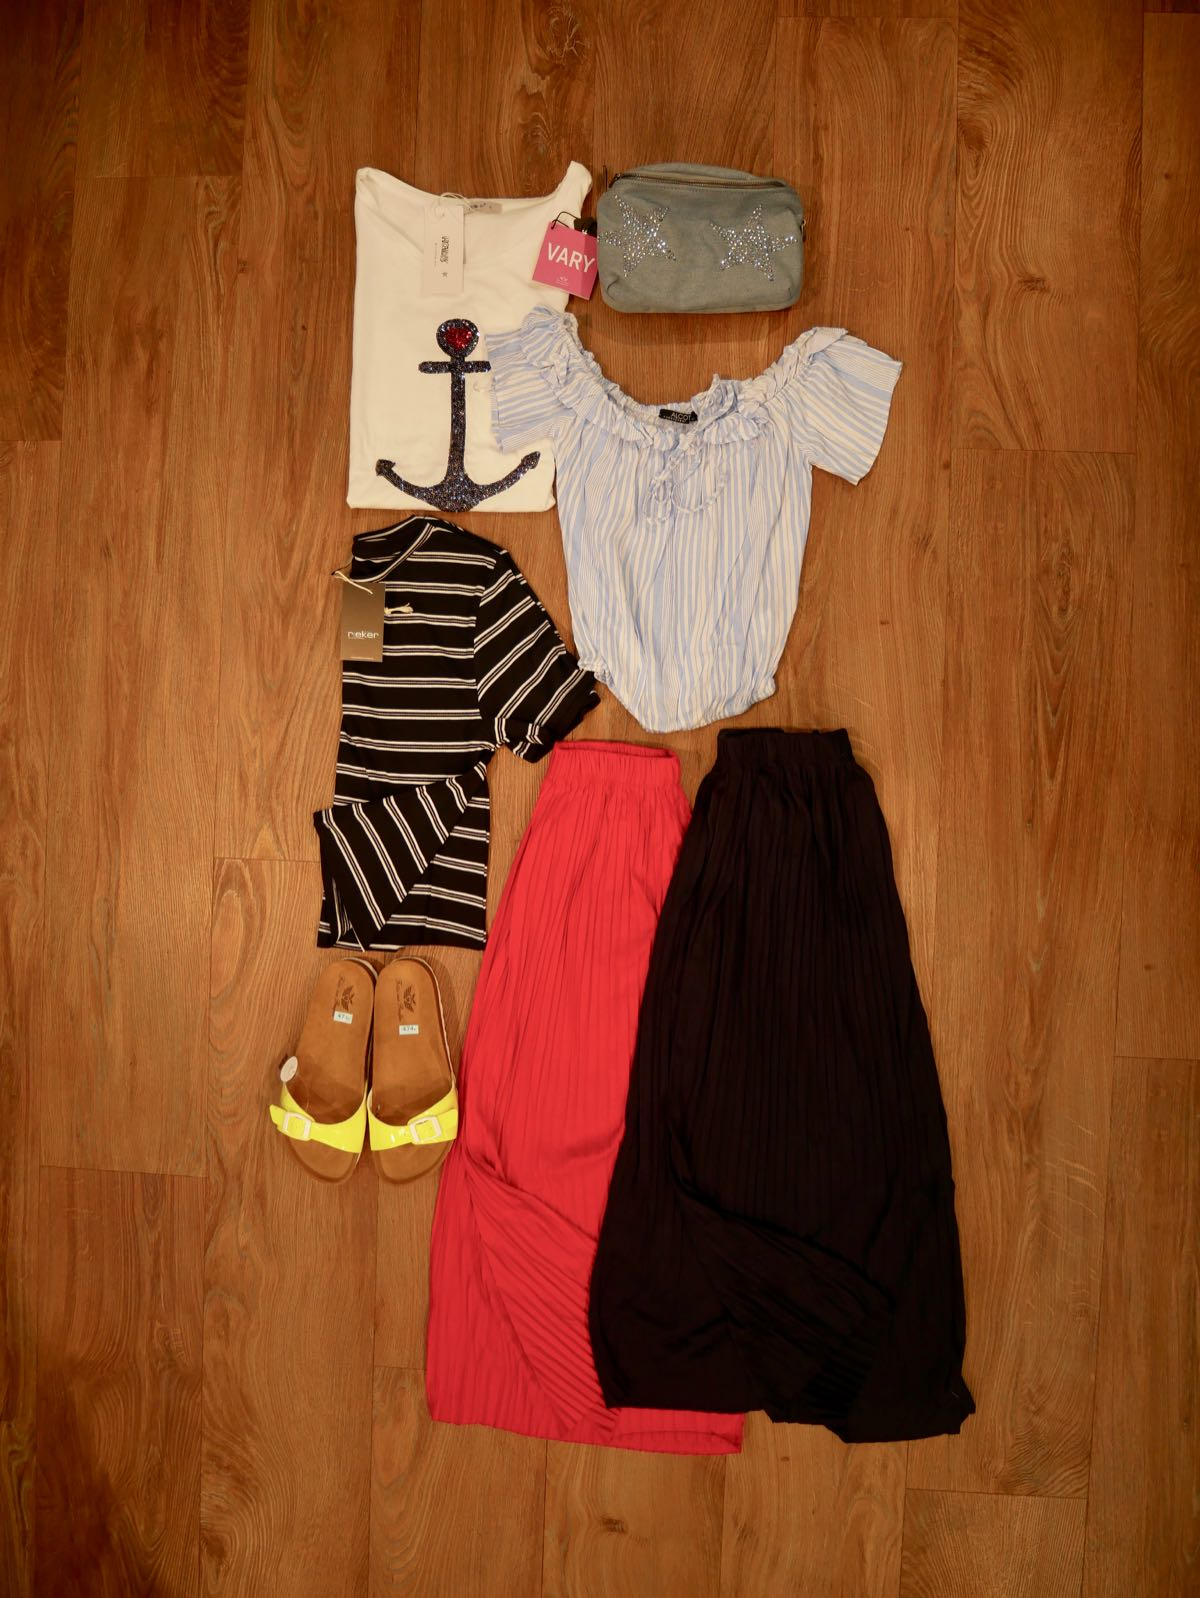 Culotte Outfits